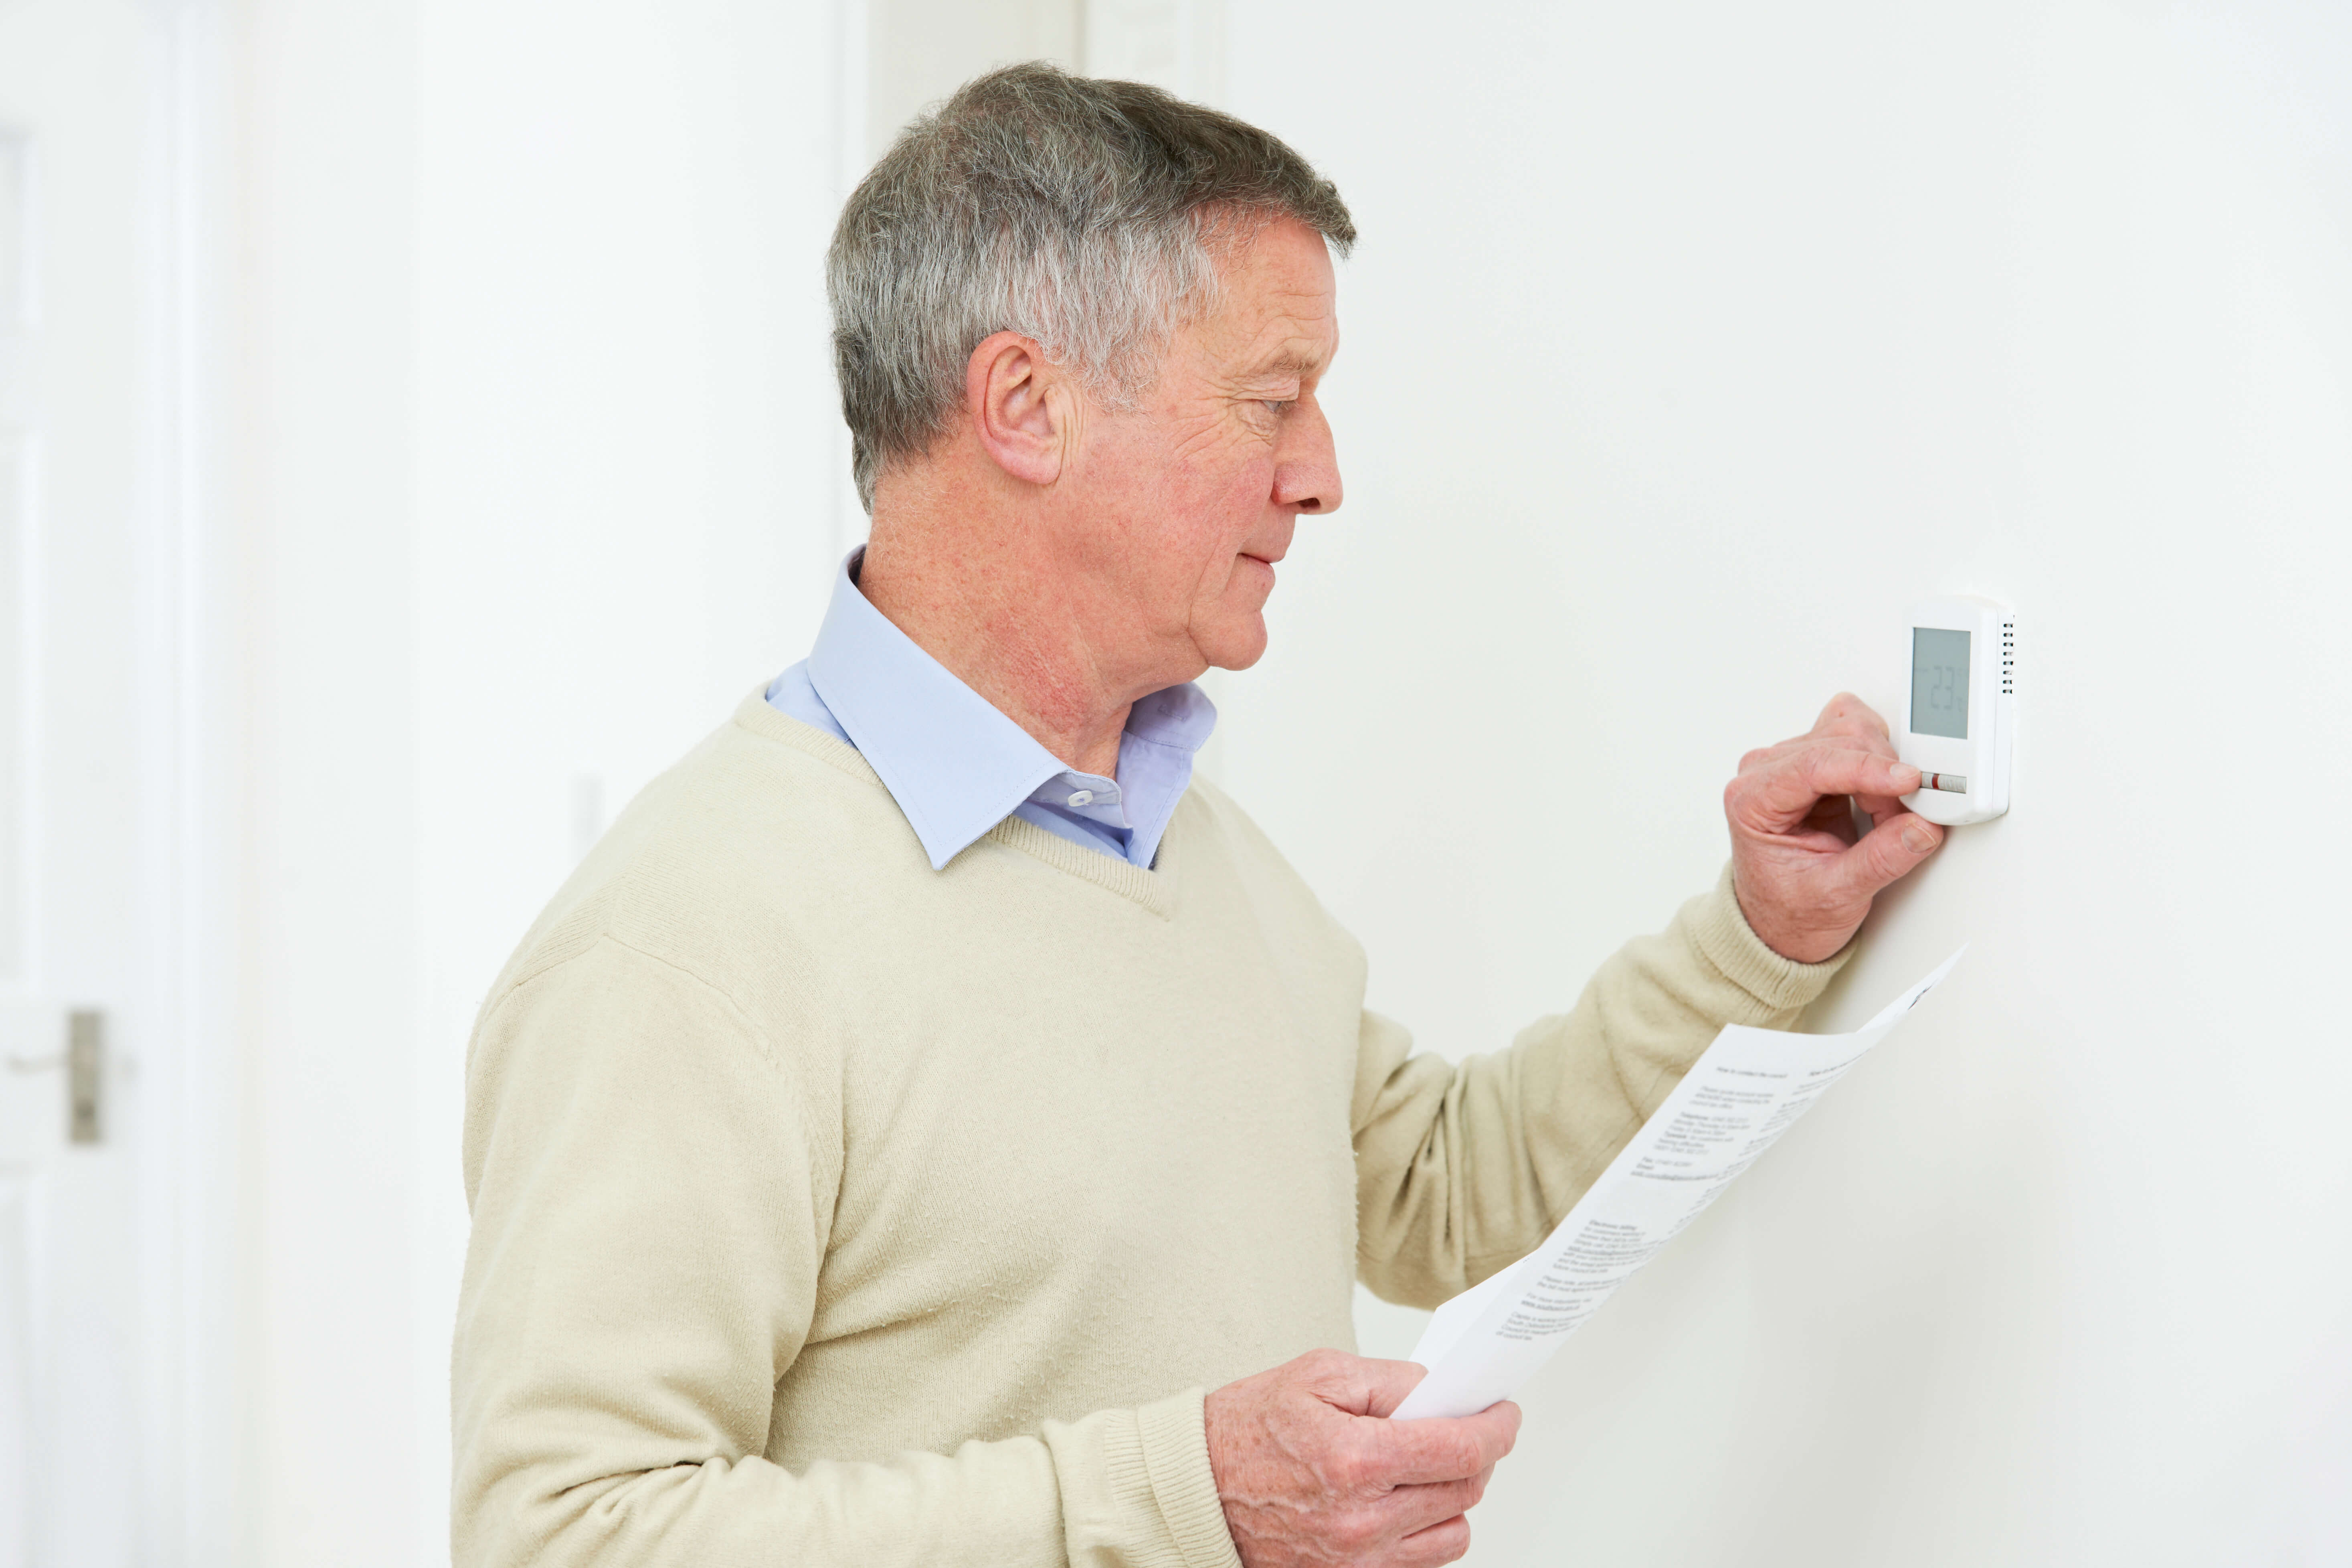 AGE WELL CT - HOW ENERGY ASSISTANCE PROGRAMS CAN HELP